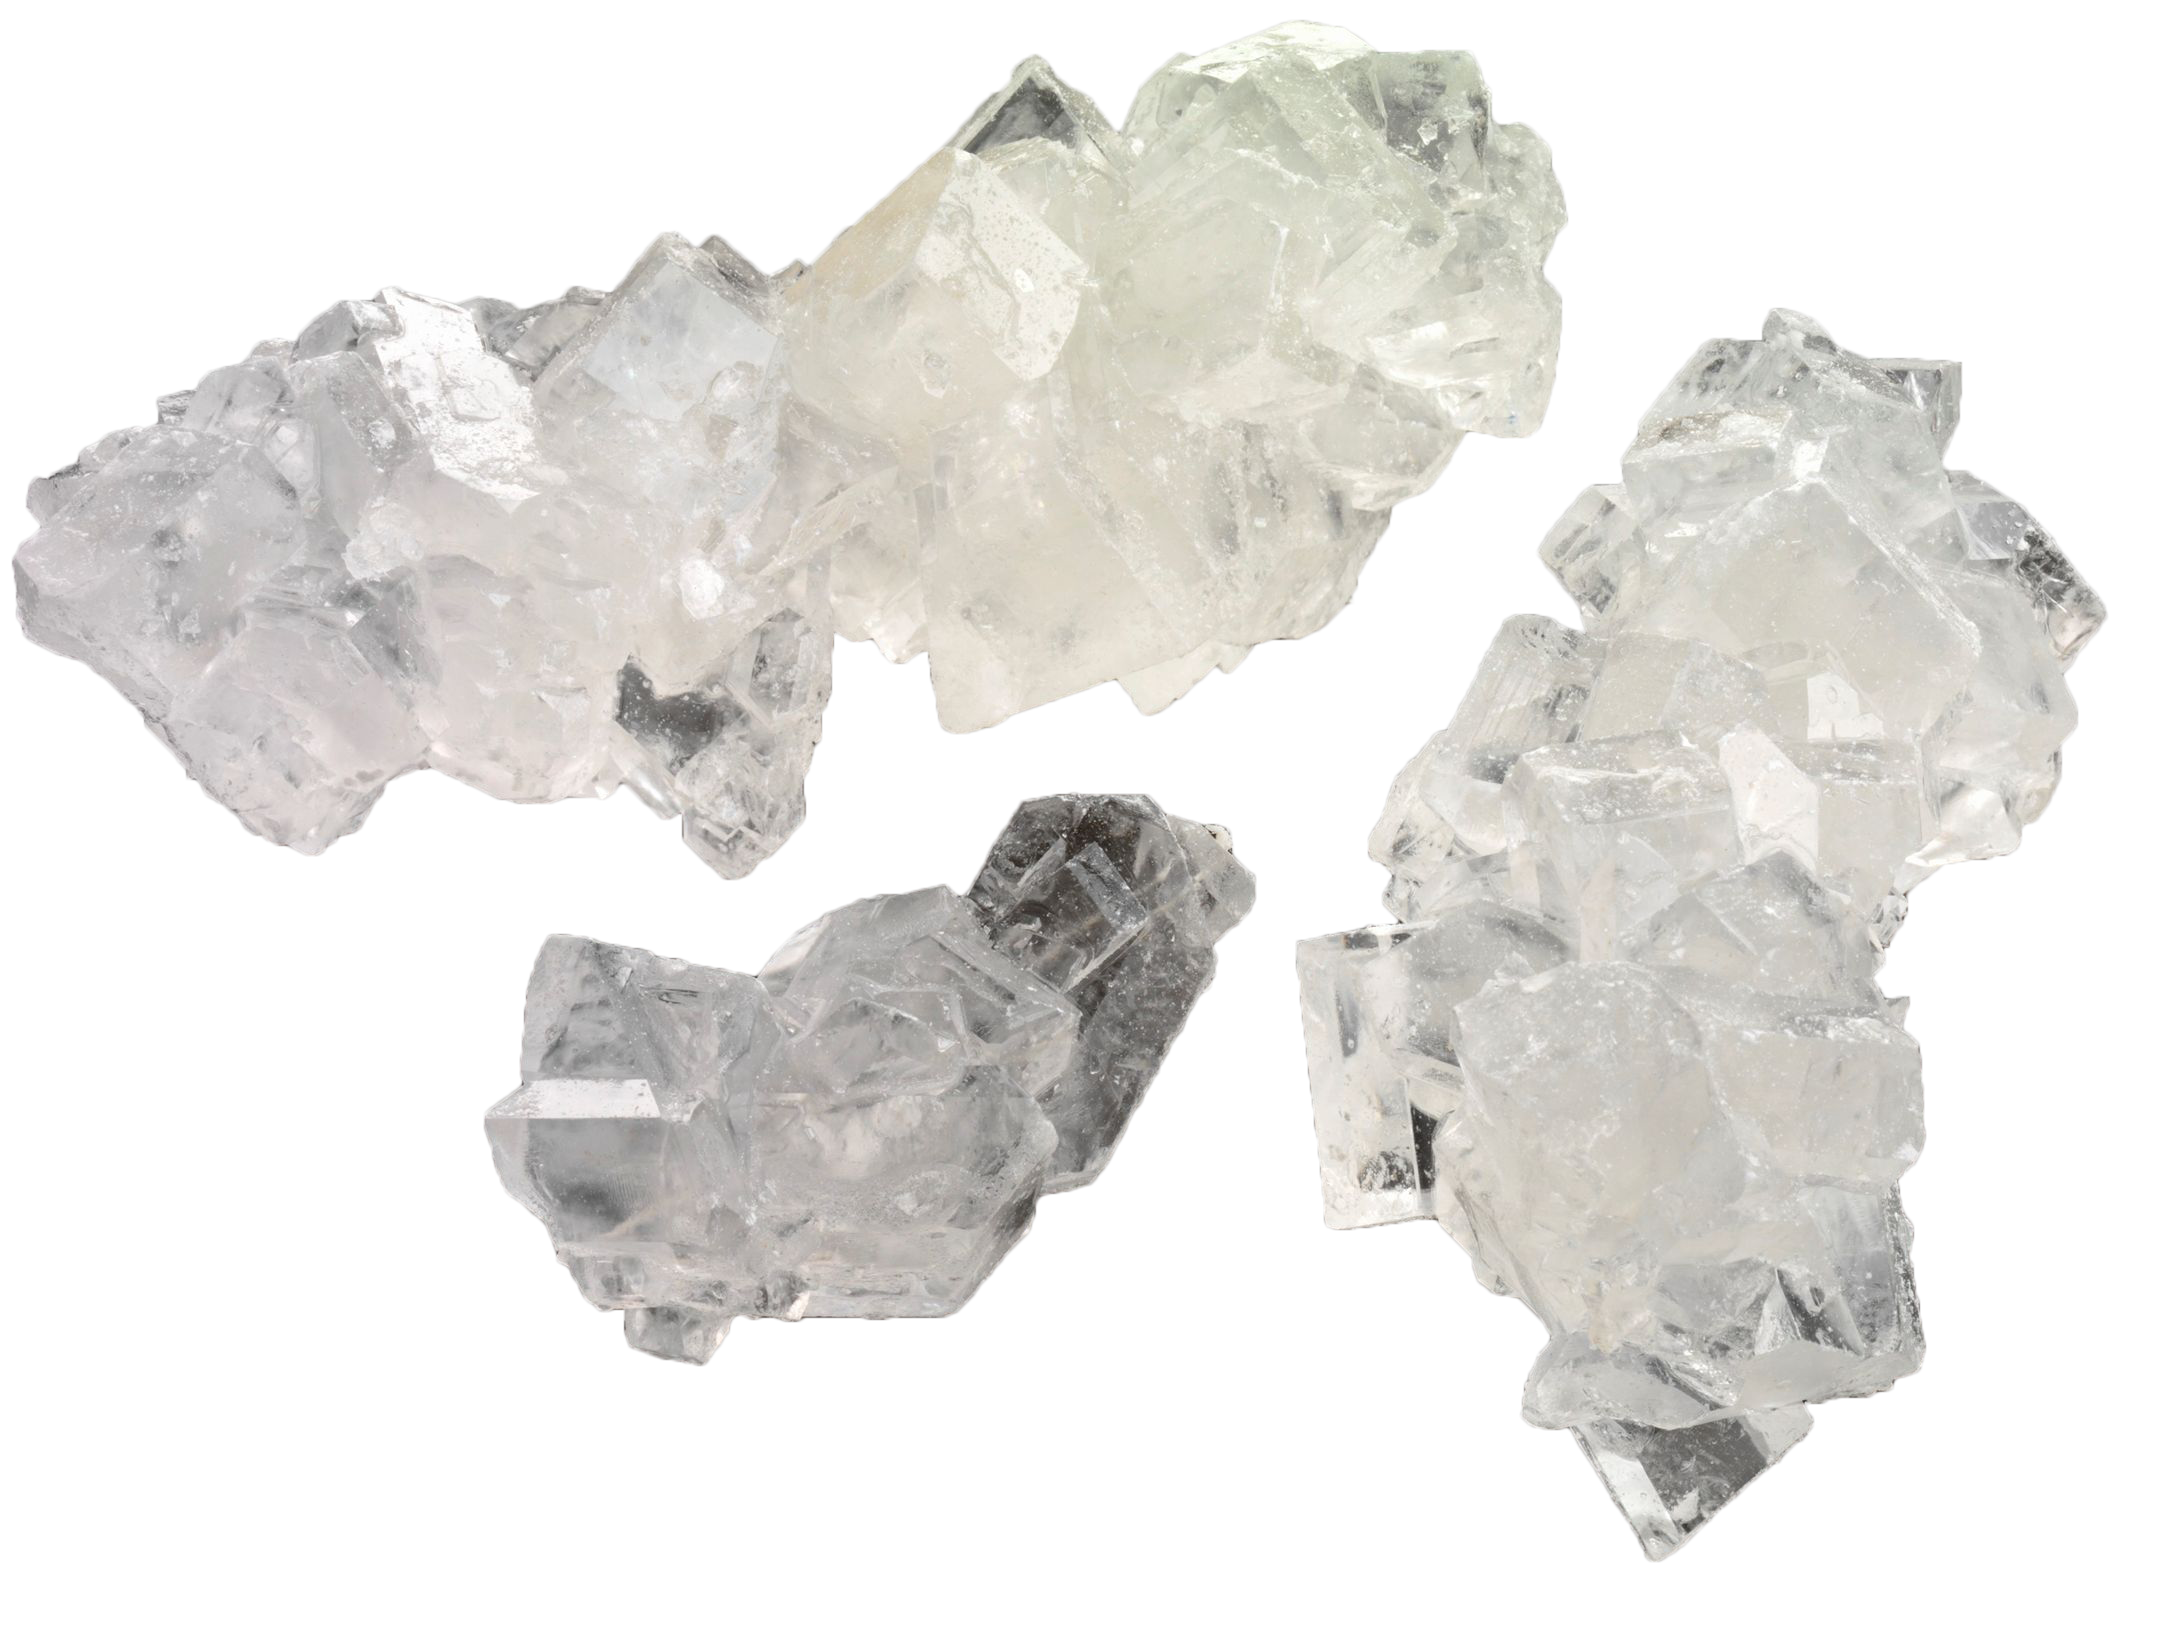 Rock candy crystal sugar. Transparent mineral image black and white